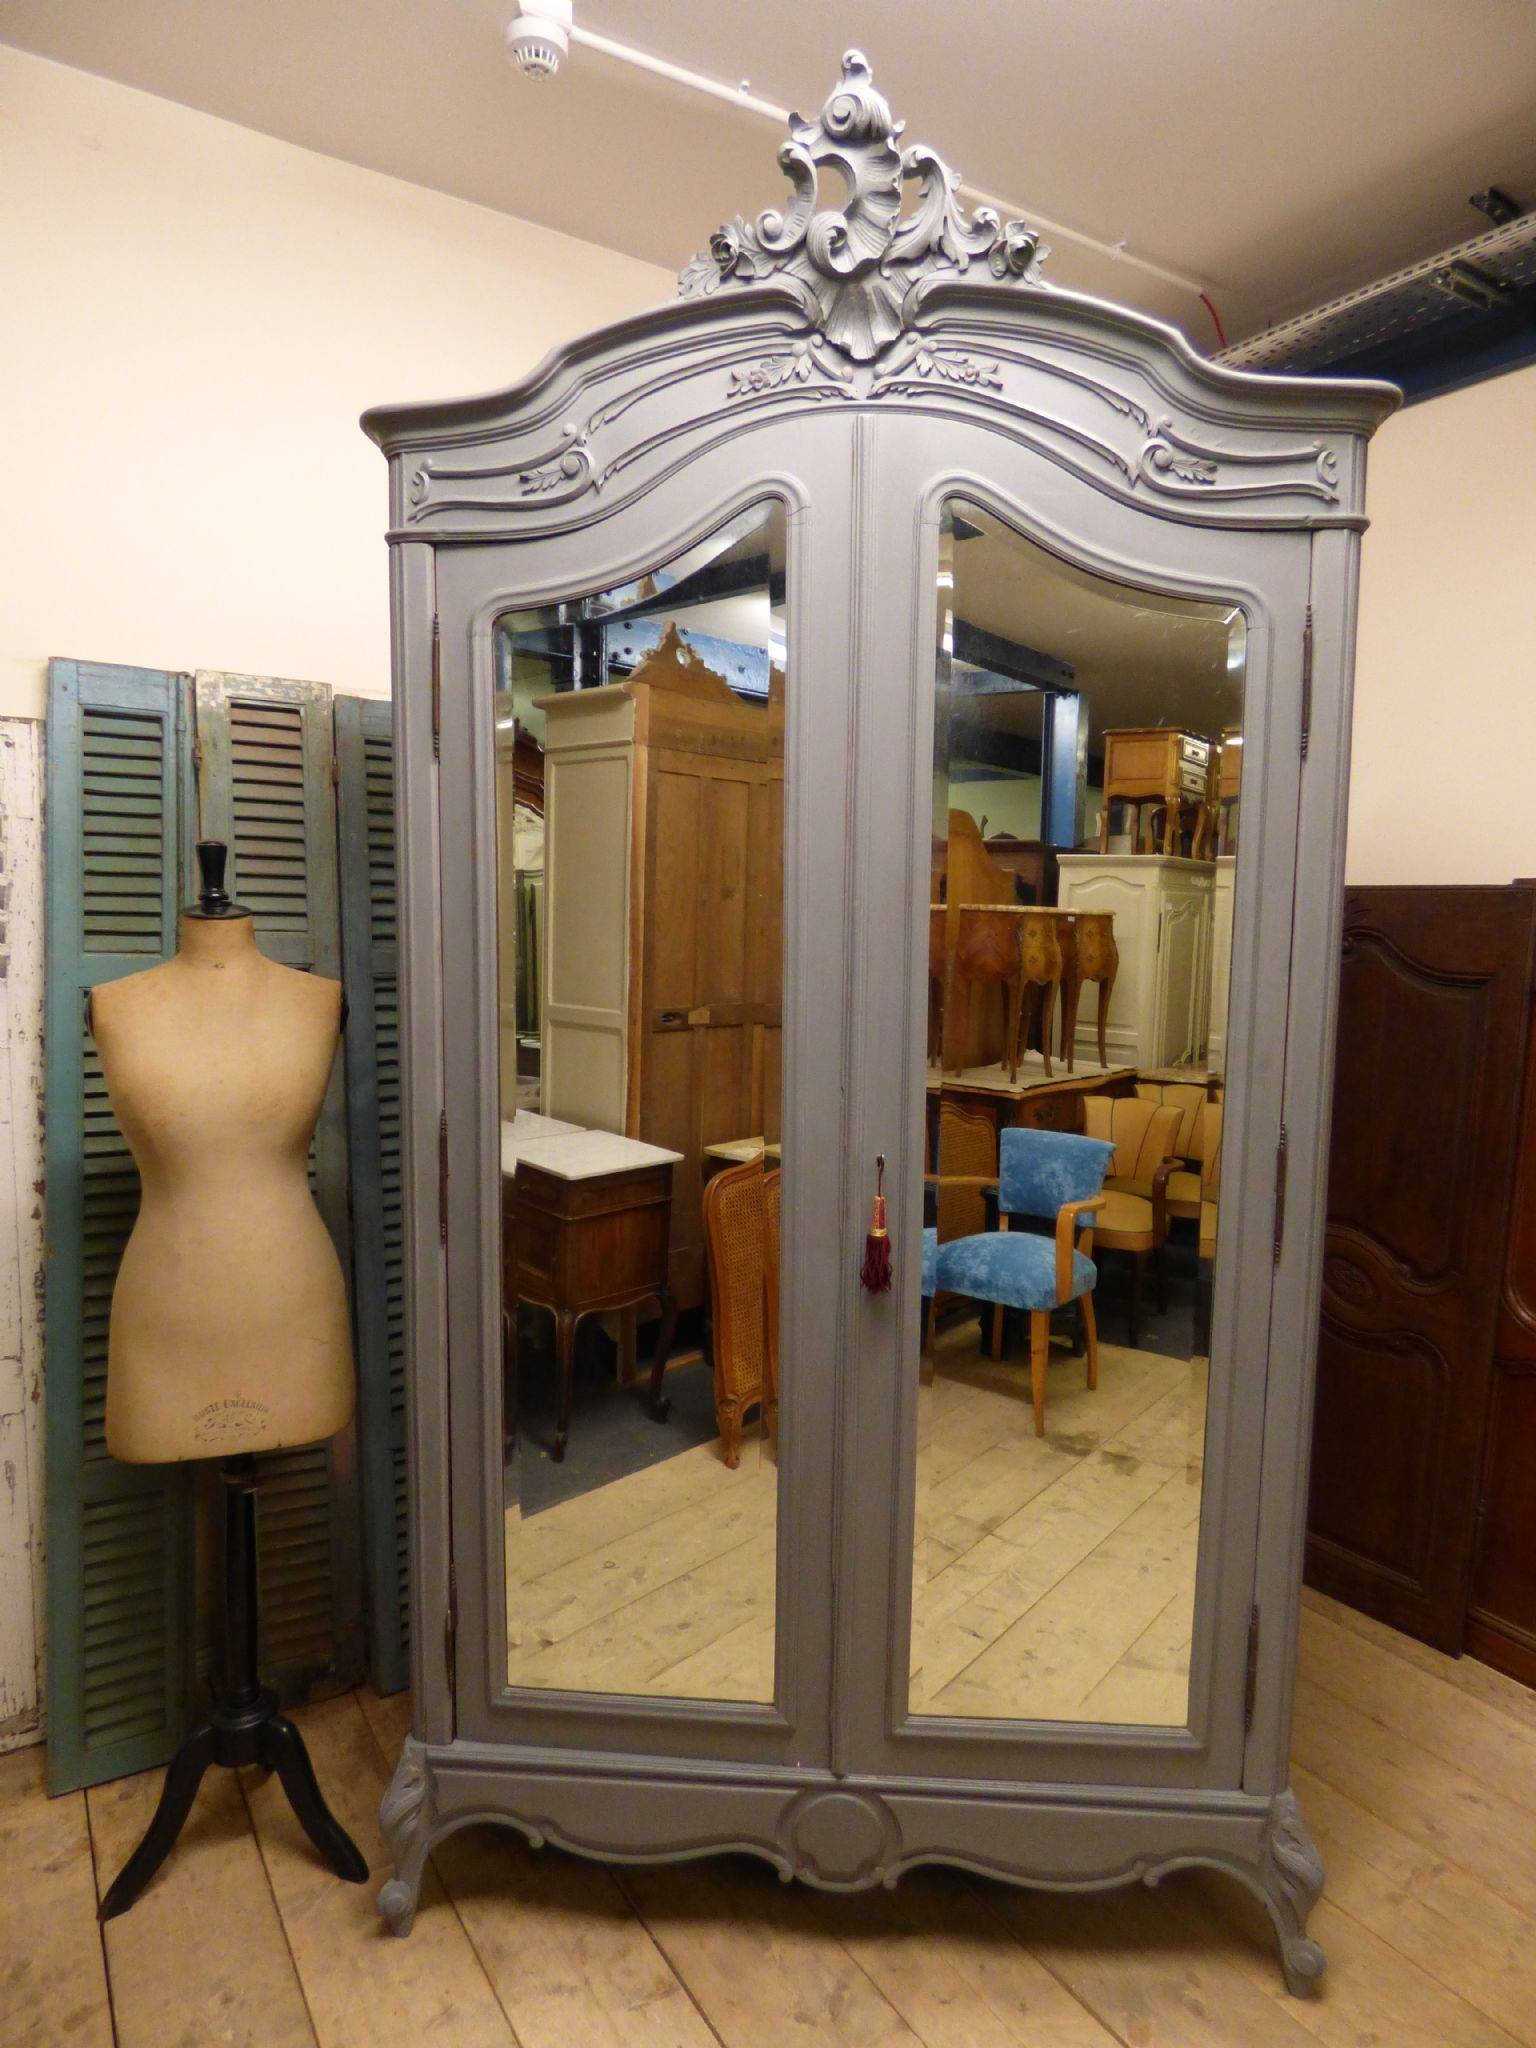 Antique French Armoire Bookcase - French Wardrobe - Hc03 - The pertaining to French Armoires and Wardrobes (Image 1 of 15)